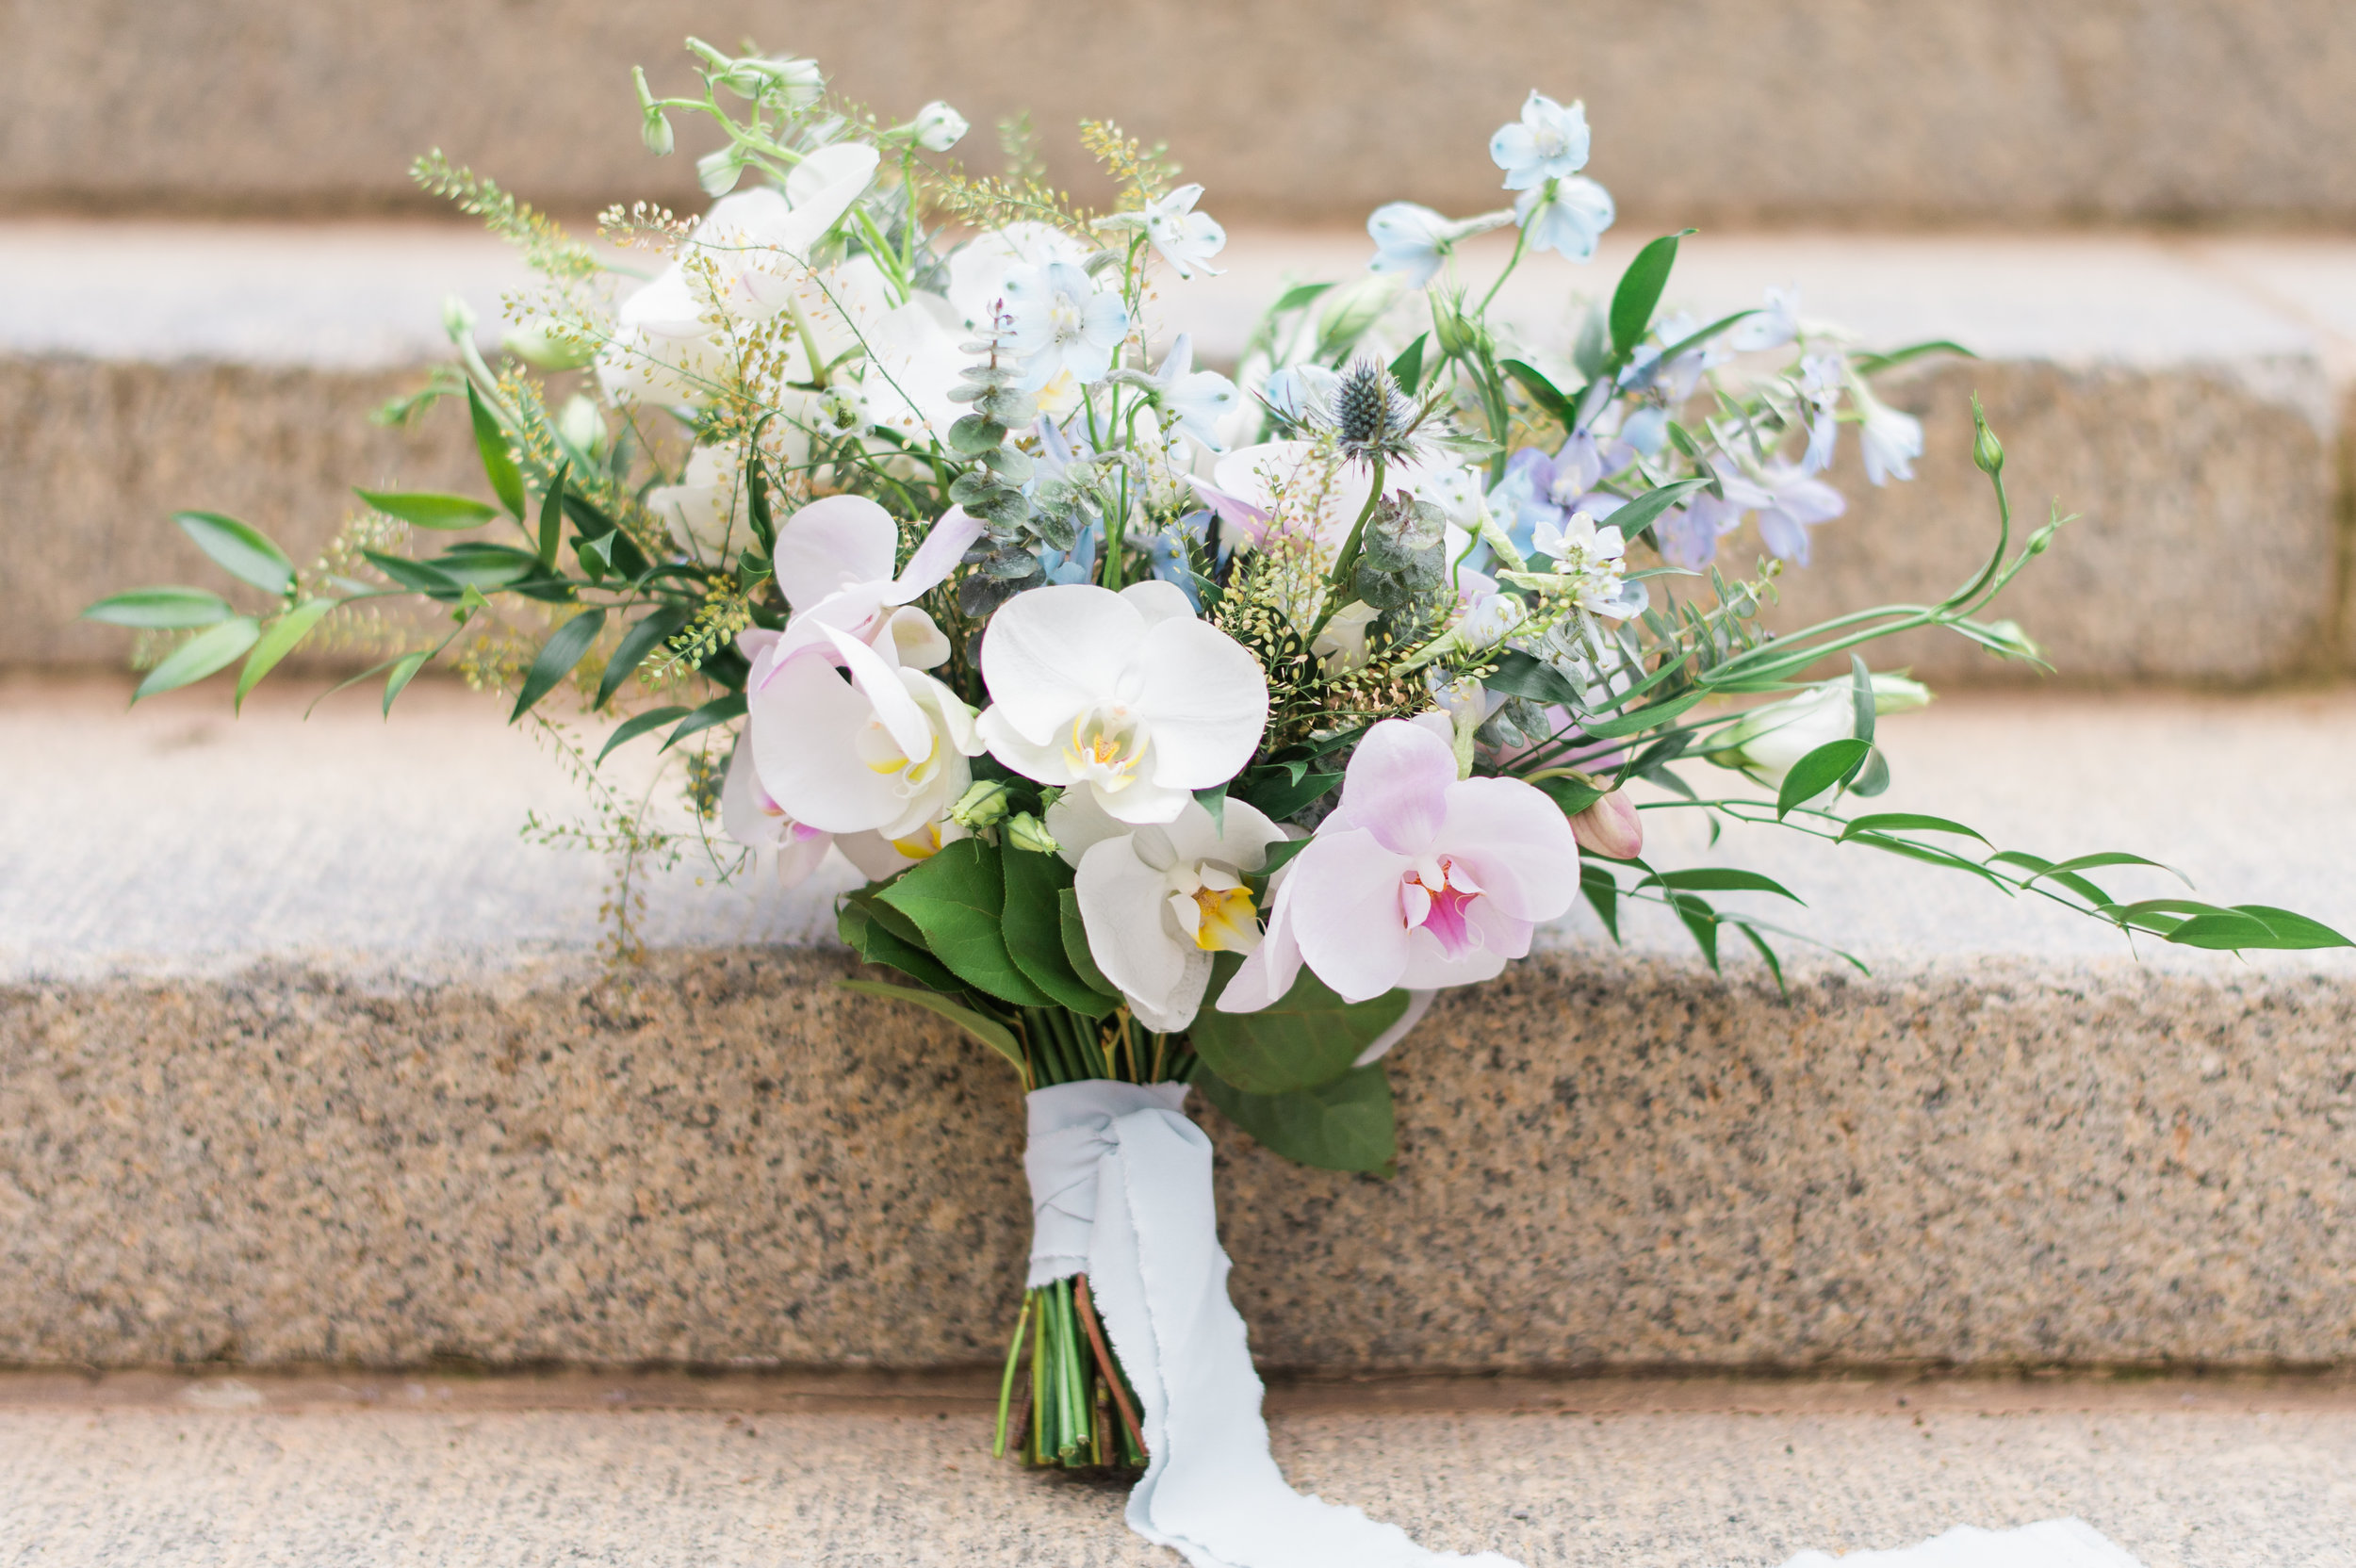 The bouquet. Phalaenopsis in pale pink and white, Delphinium, Thistle, Pennycress, Eucalyptus and local greenery.